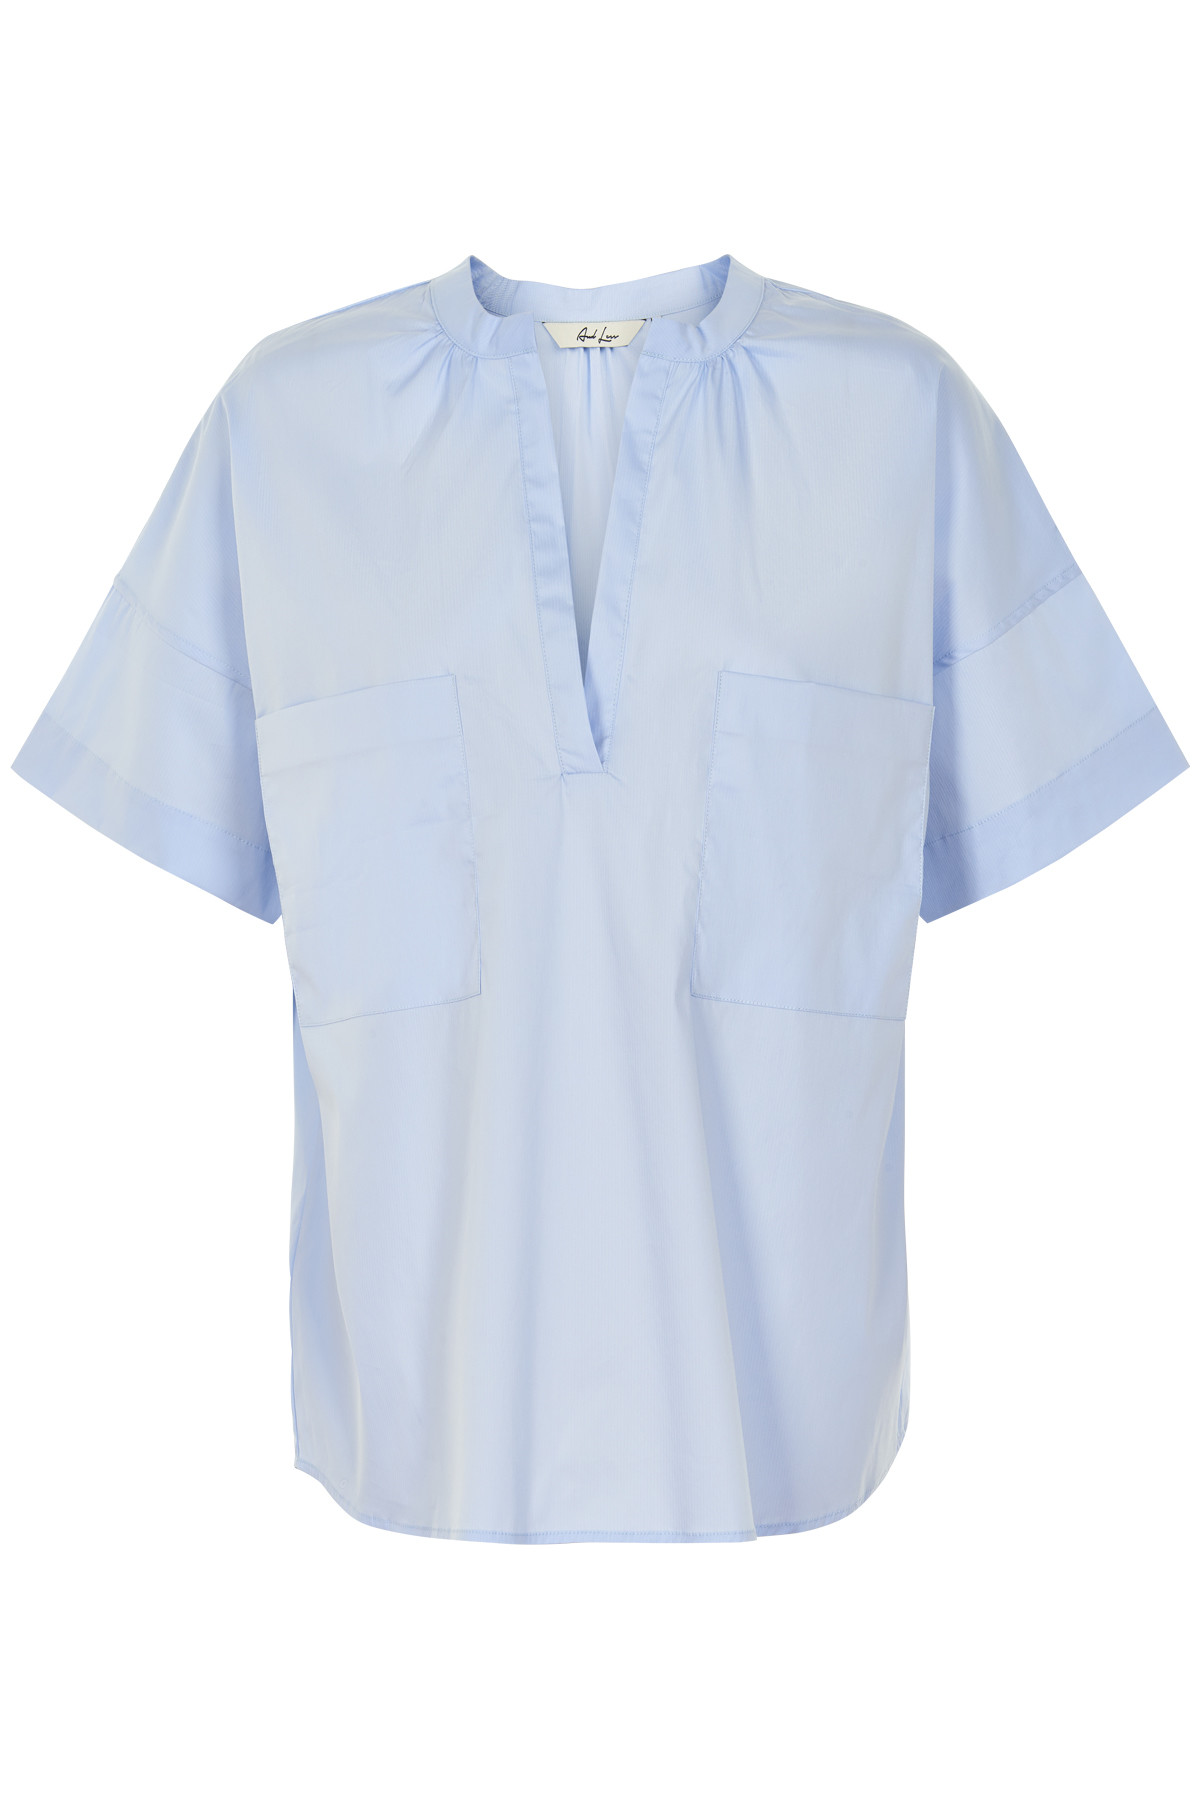 Image of   AND LESS ORIBELLA BLUSE 5219009 (Kentucky Blue, 38)